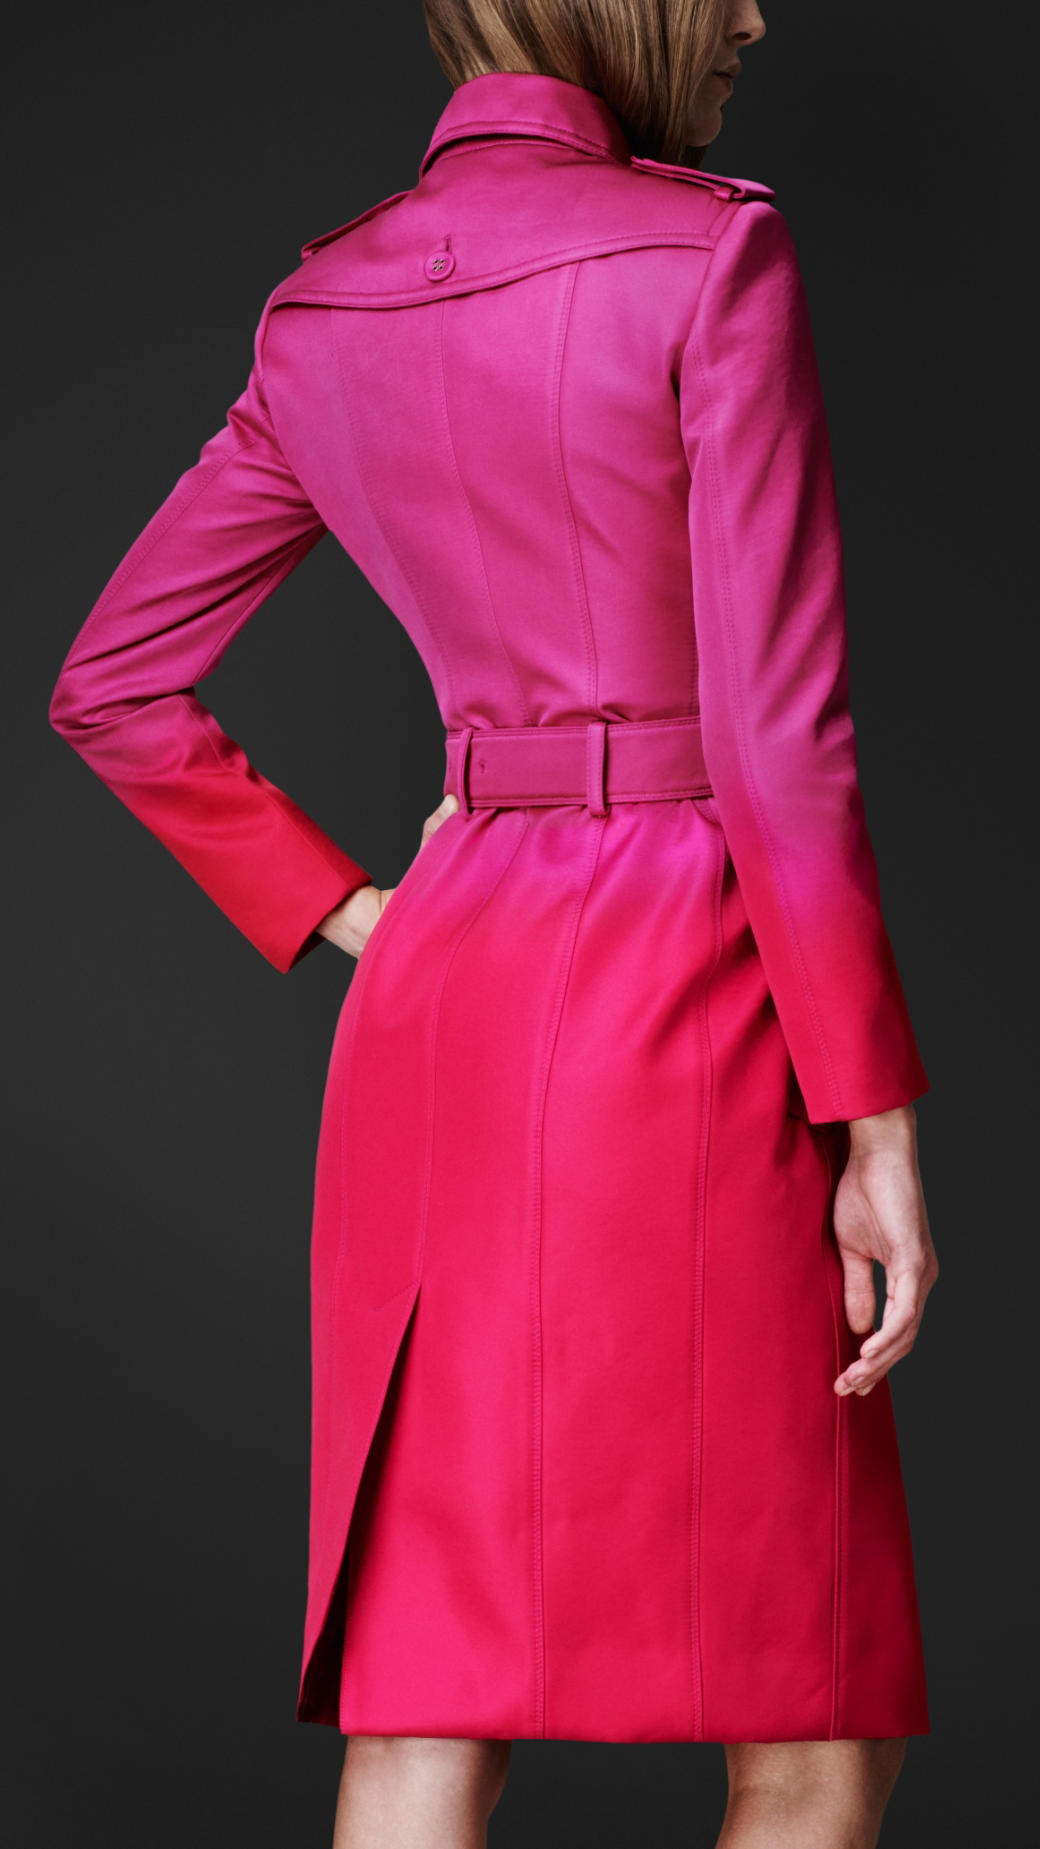 Lyst Burberry Prorsum Satin Dgrad Trench Coat In Pink